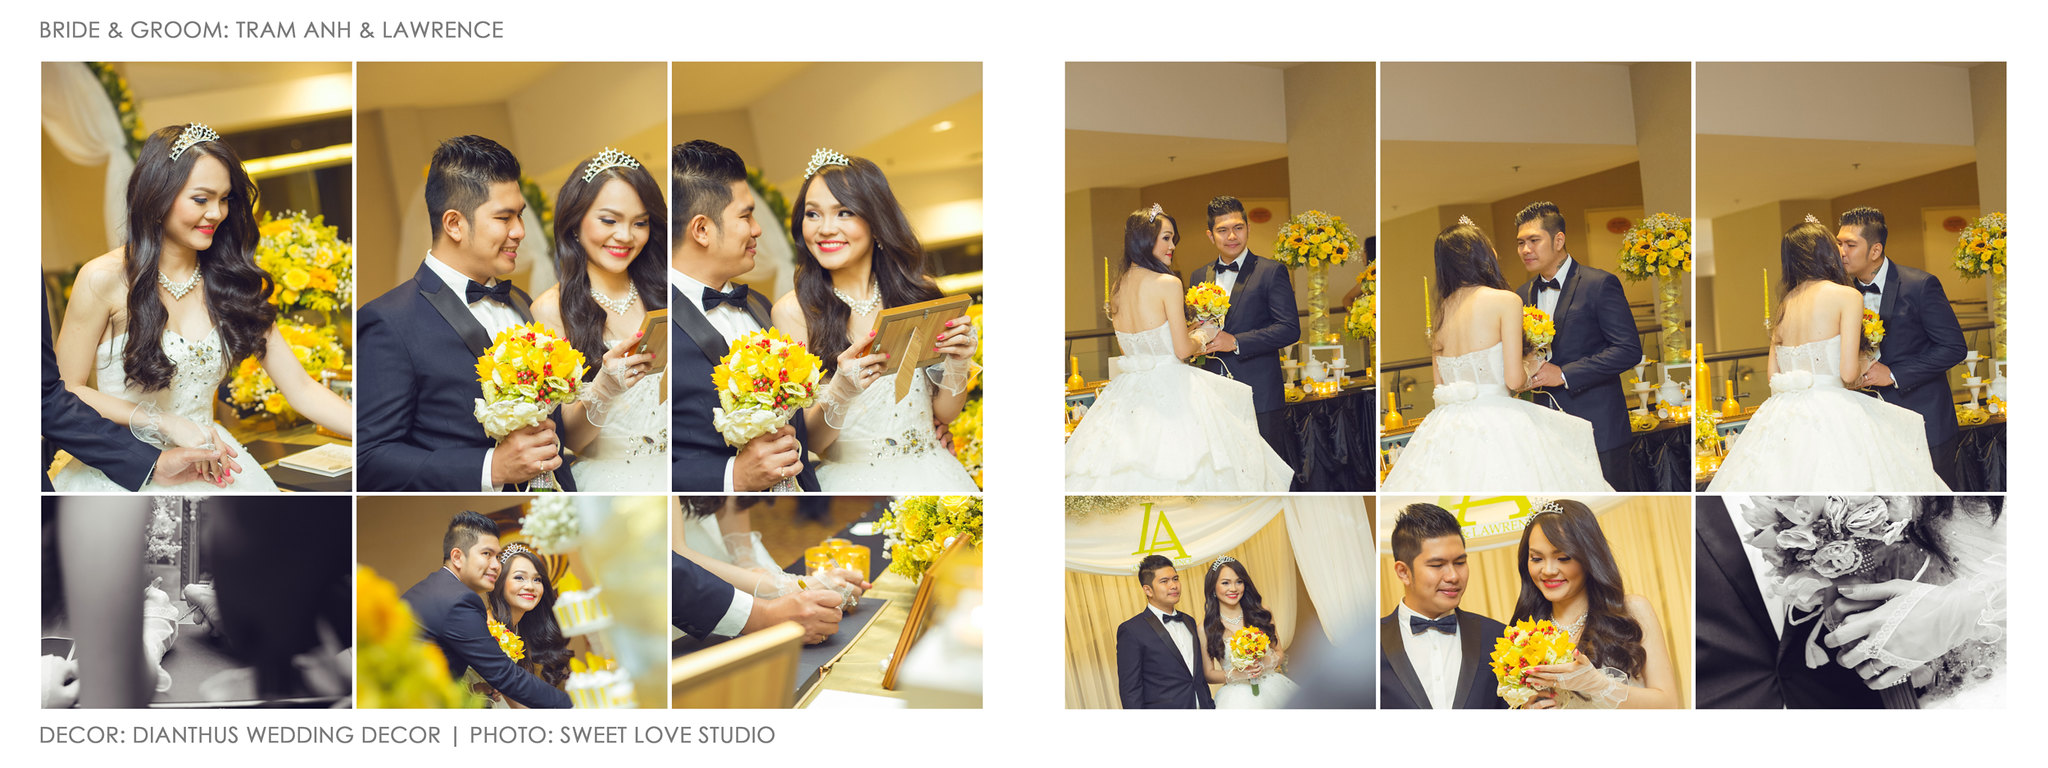 Chup-anh-cuoi-phong-su-Tram-Anh-Lawrence-21